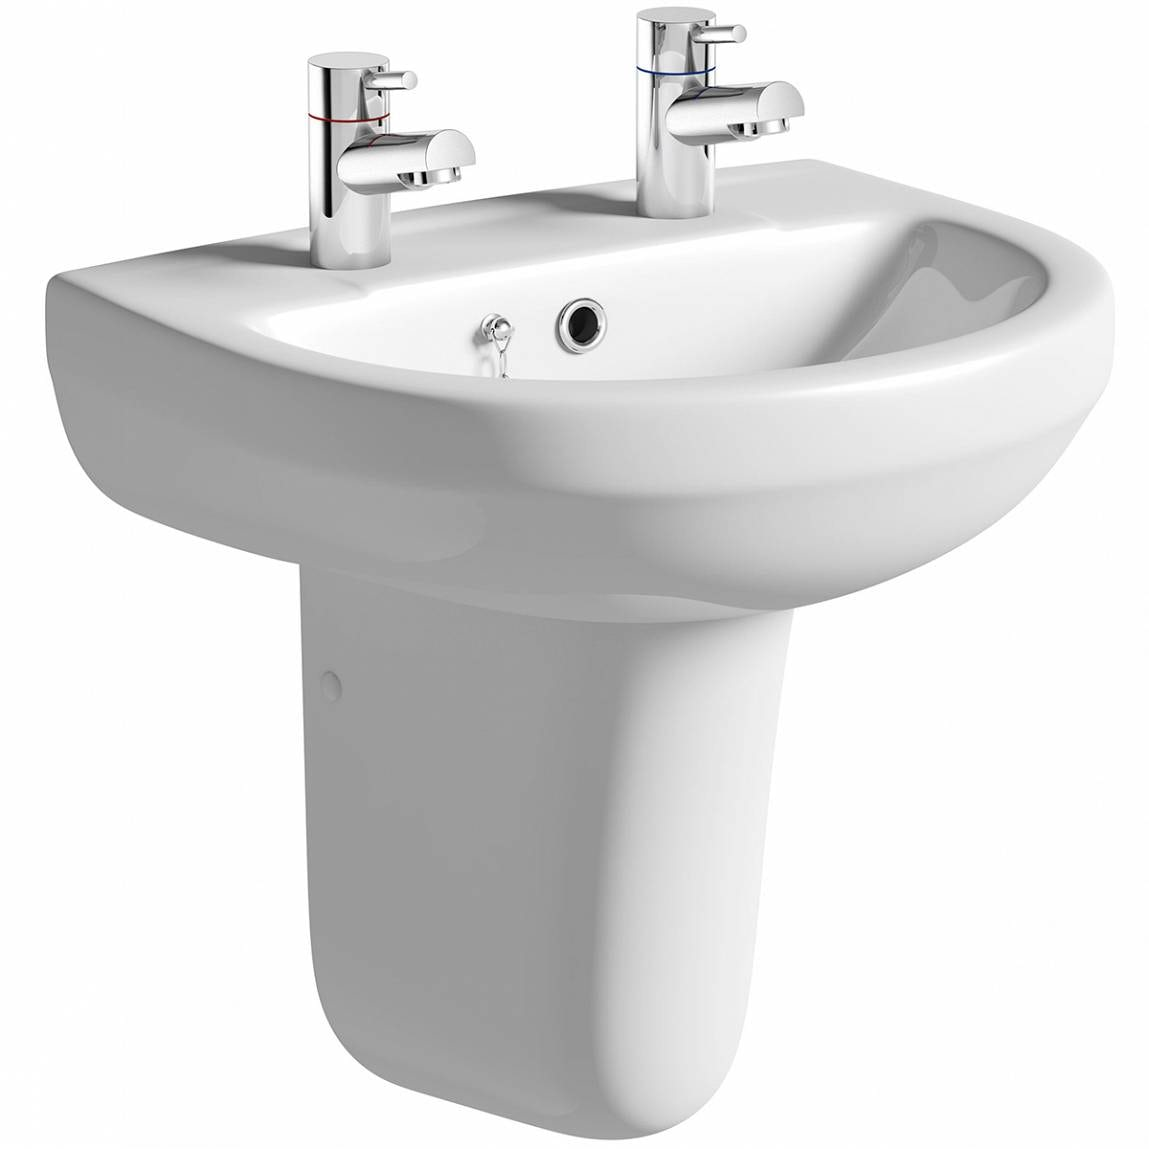 Orchard Eden 2 tap hole semi pedestal basin 550mm with waste